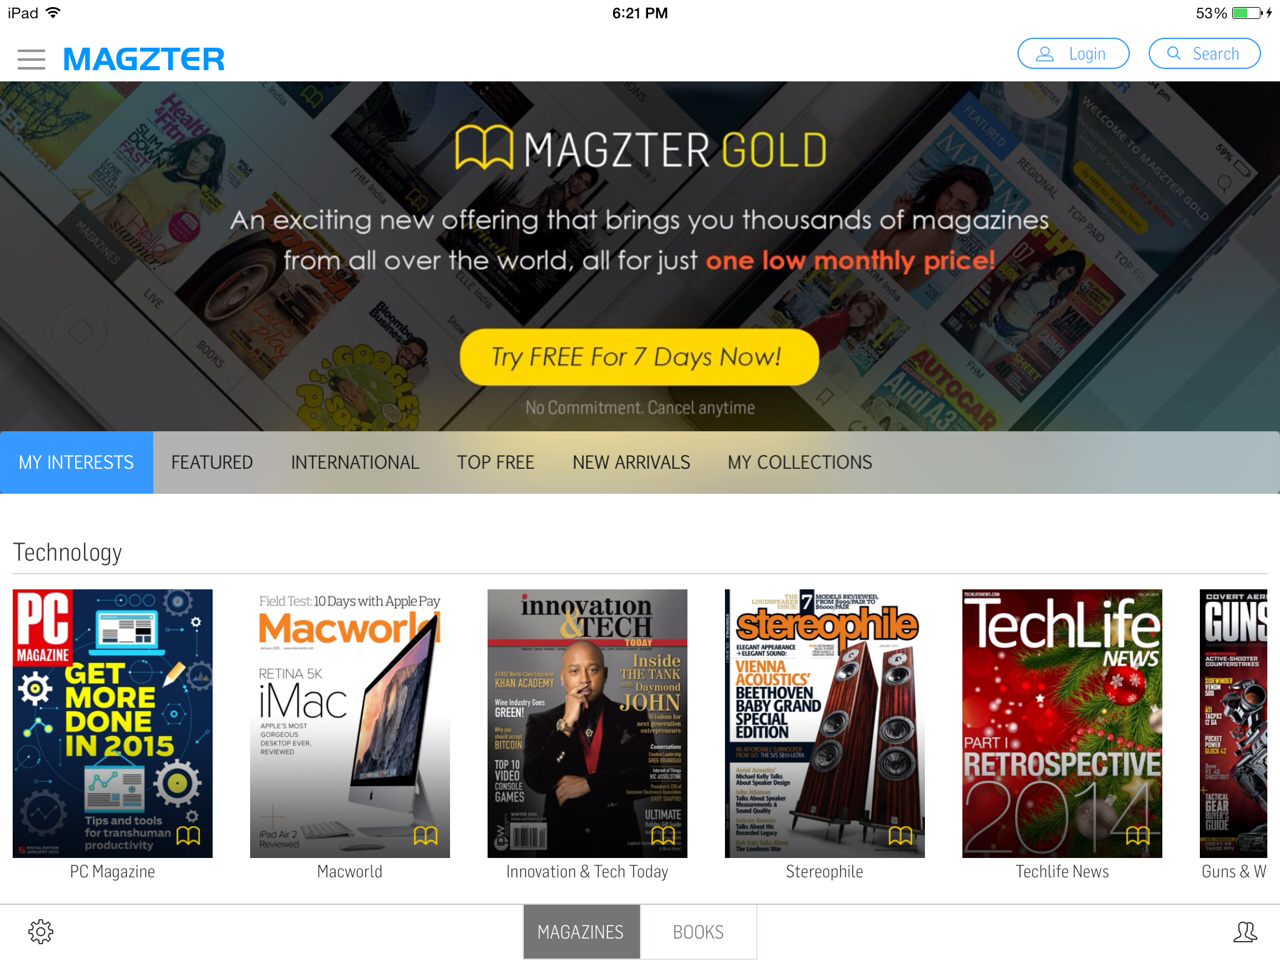 magzter-gold-ipad